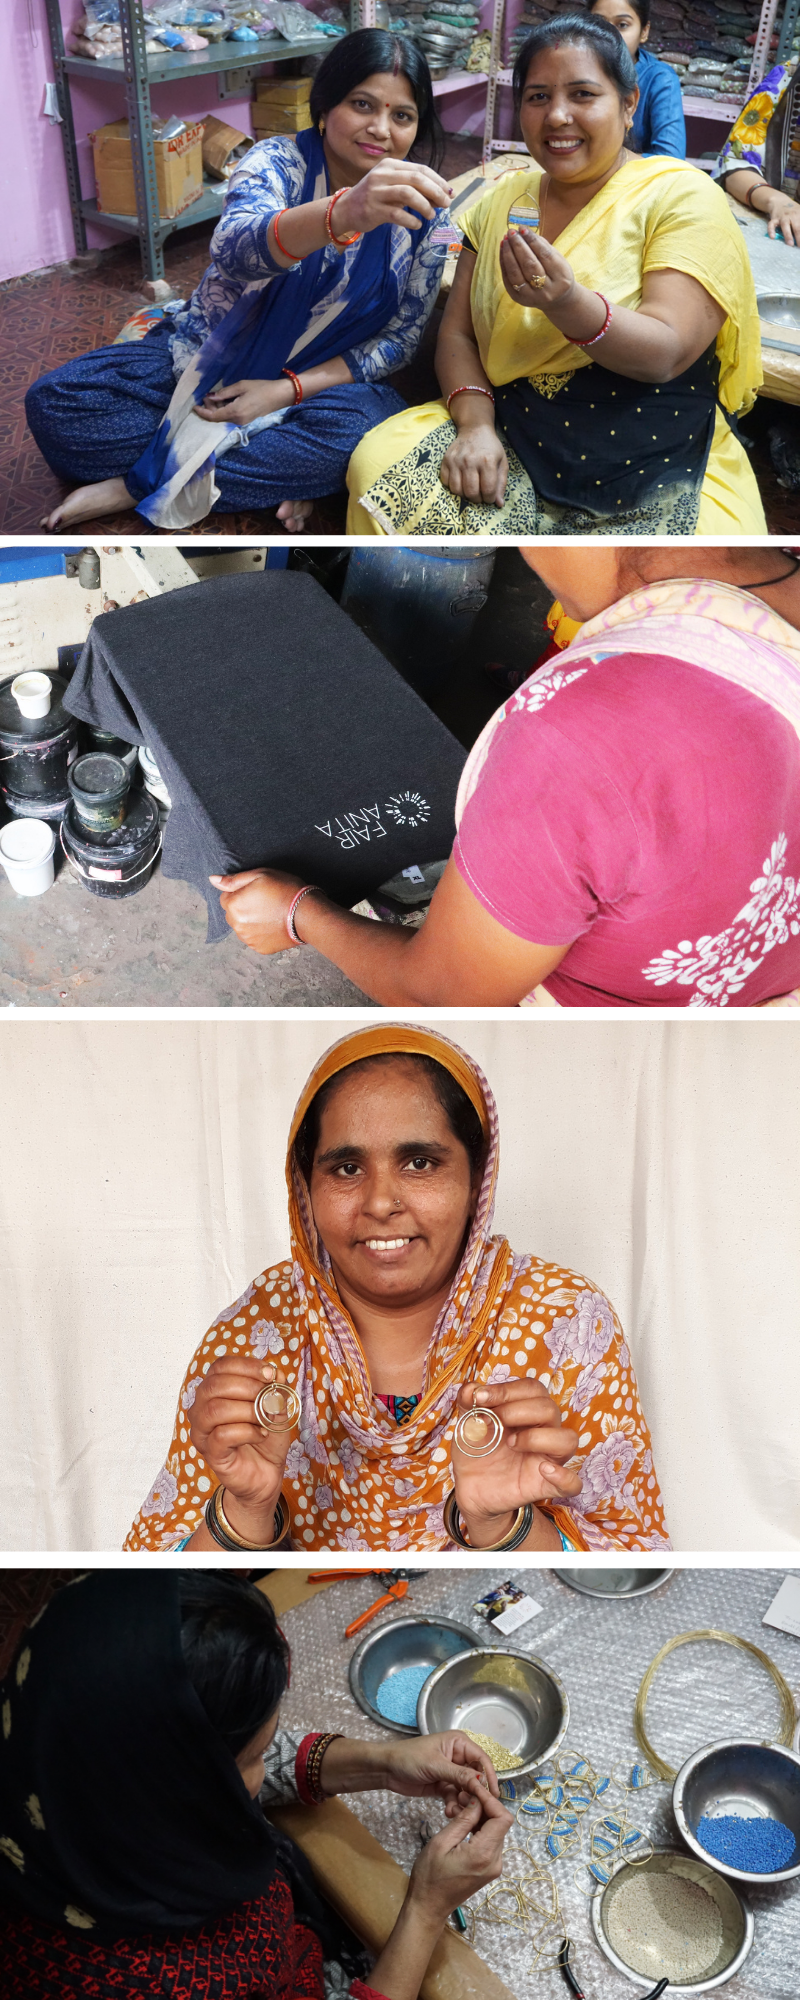 india-artisans-fair-anita.png